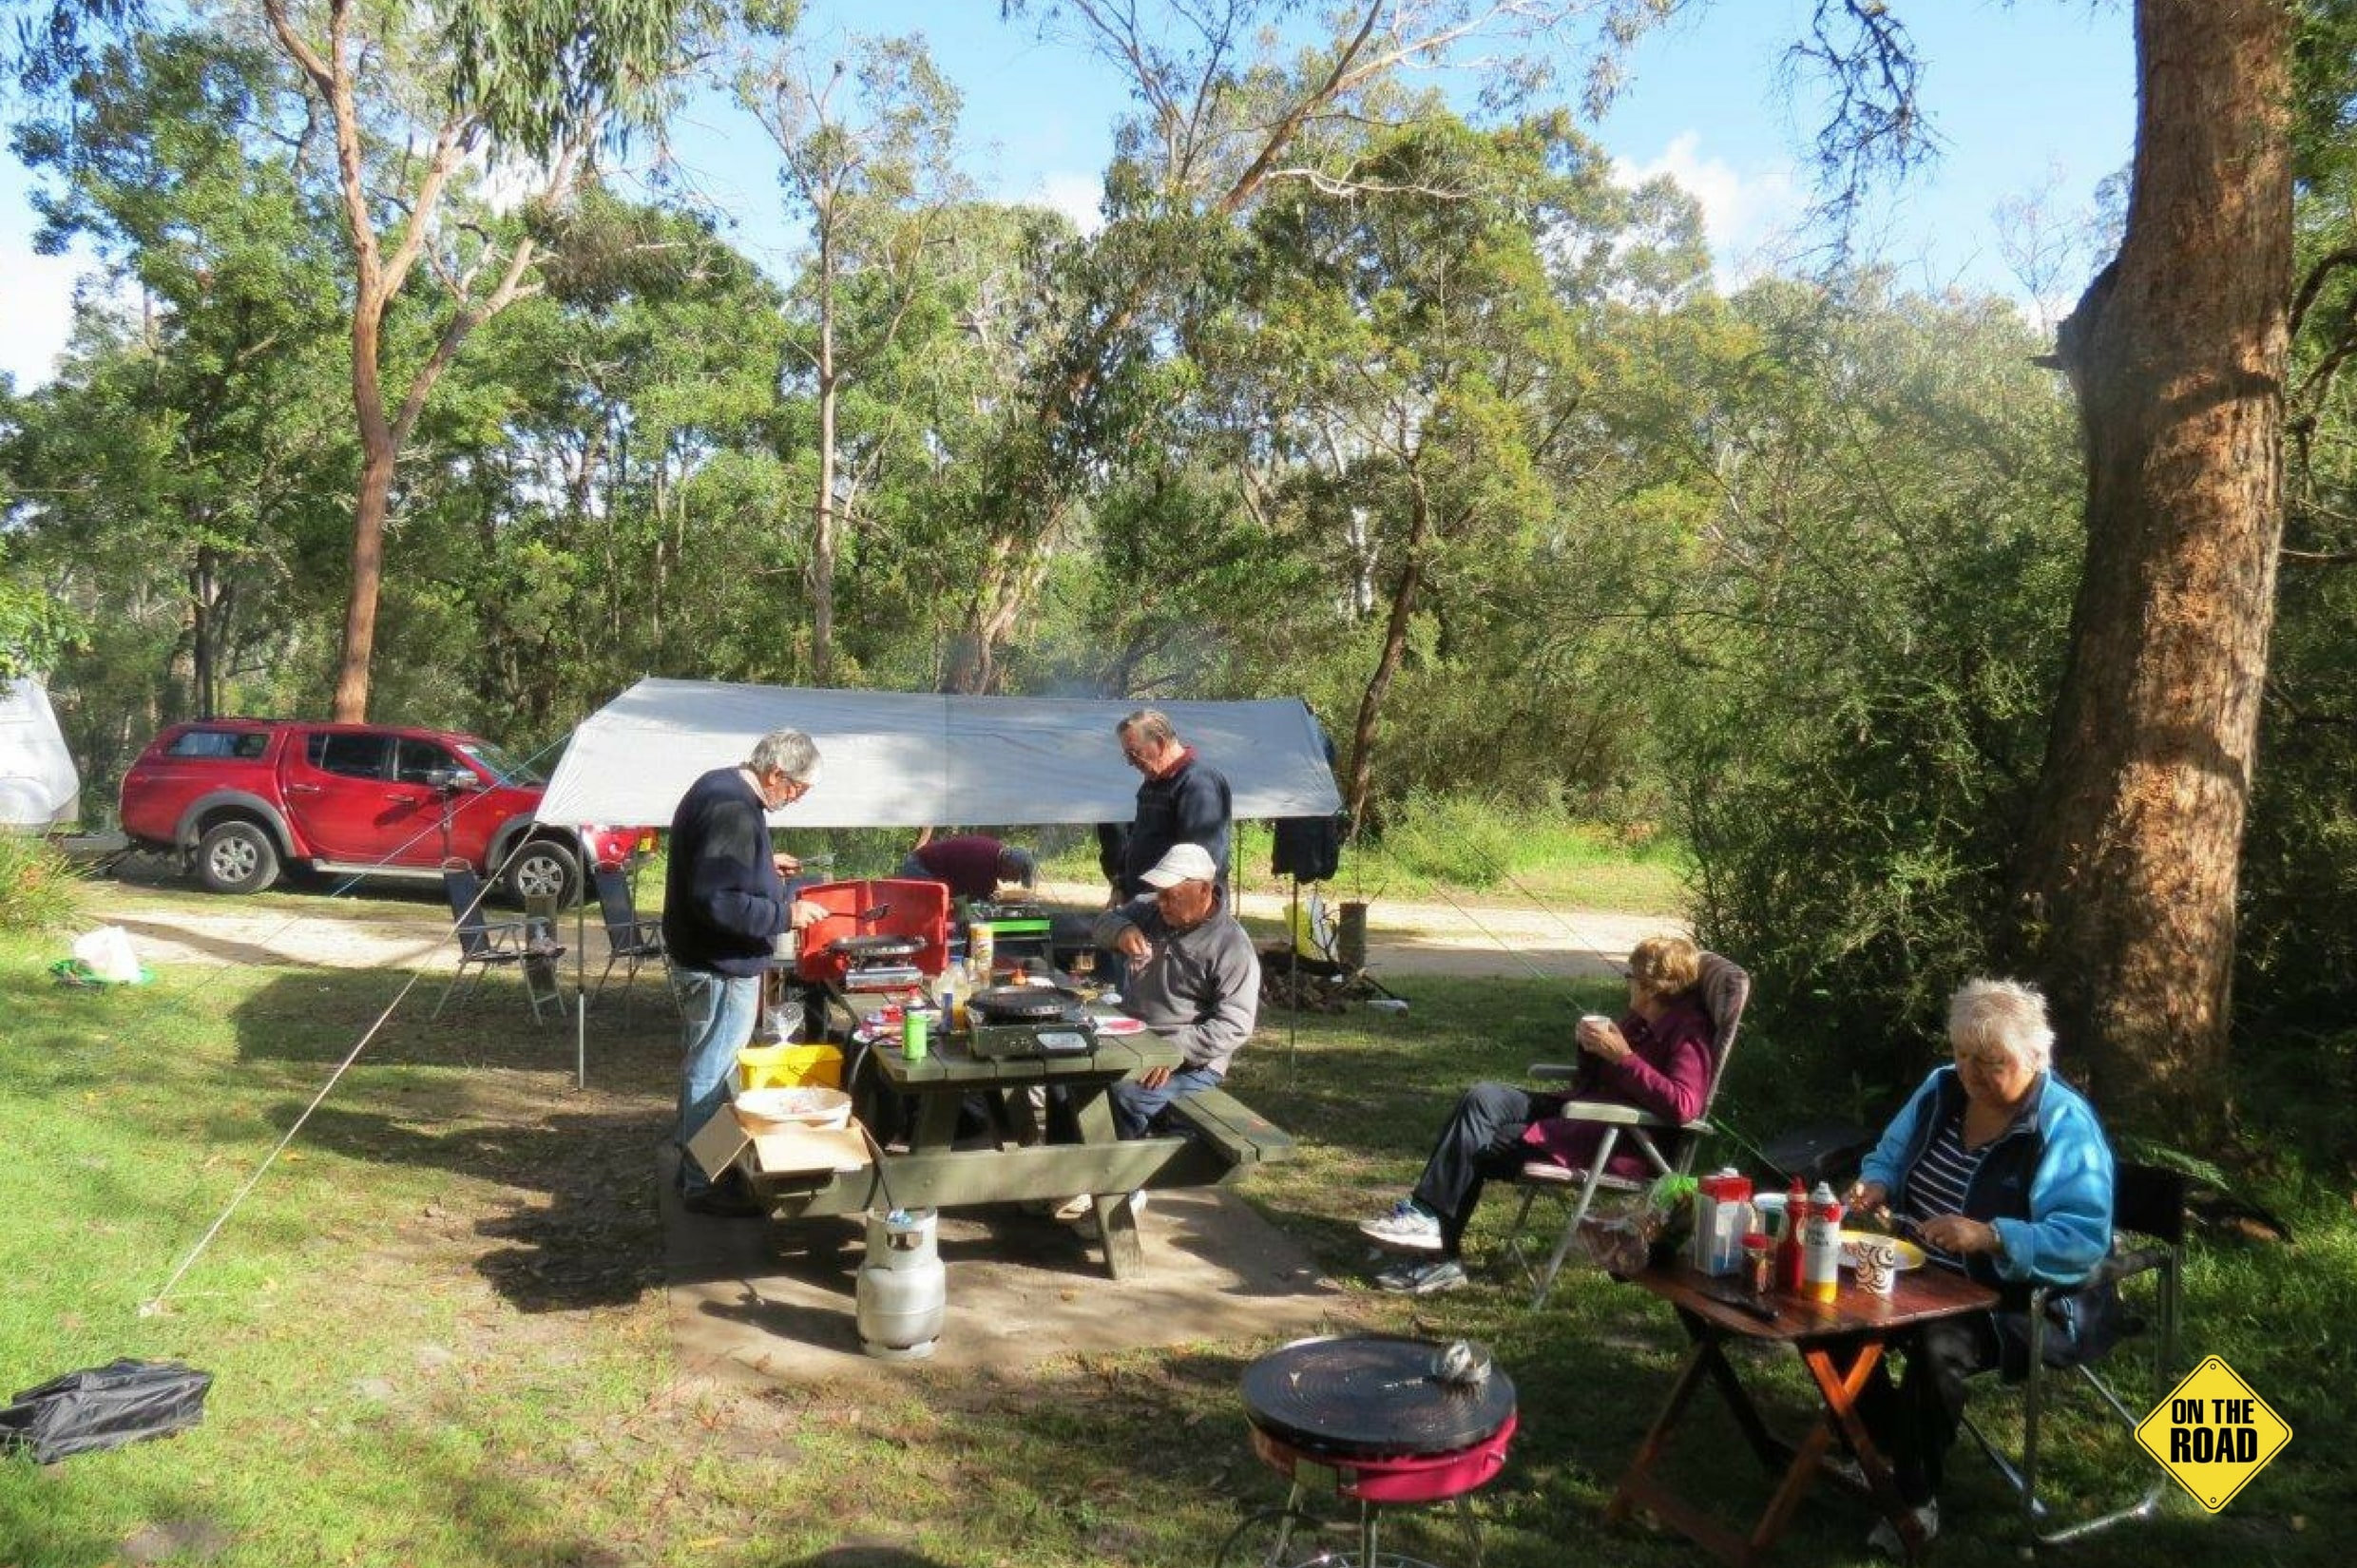 A happy group of campers preparing and tucking into a hearty bush breakfast.